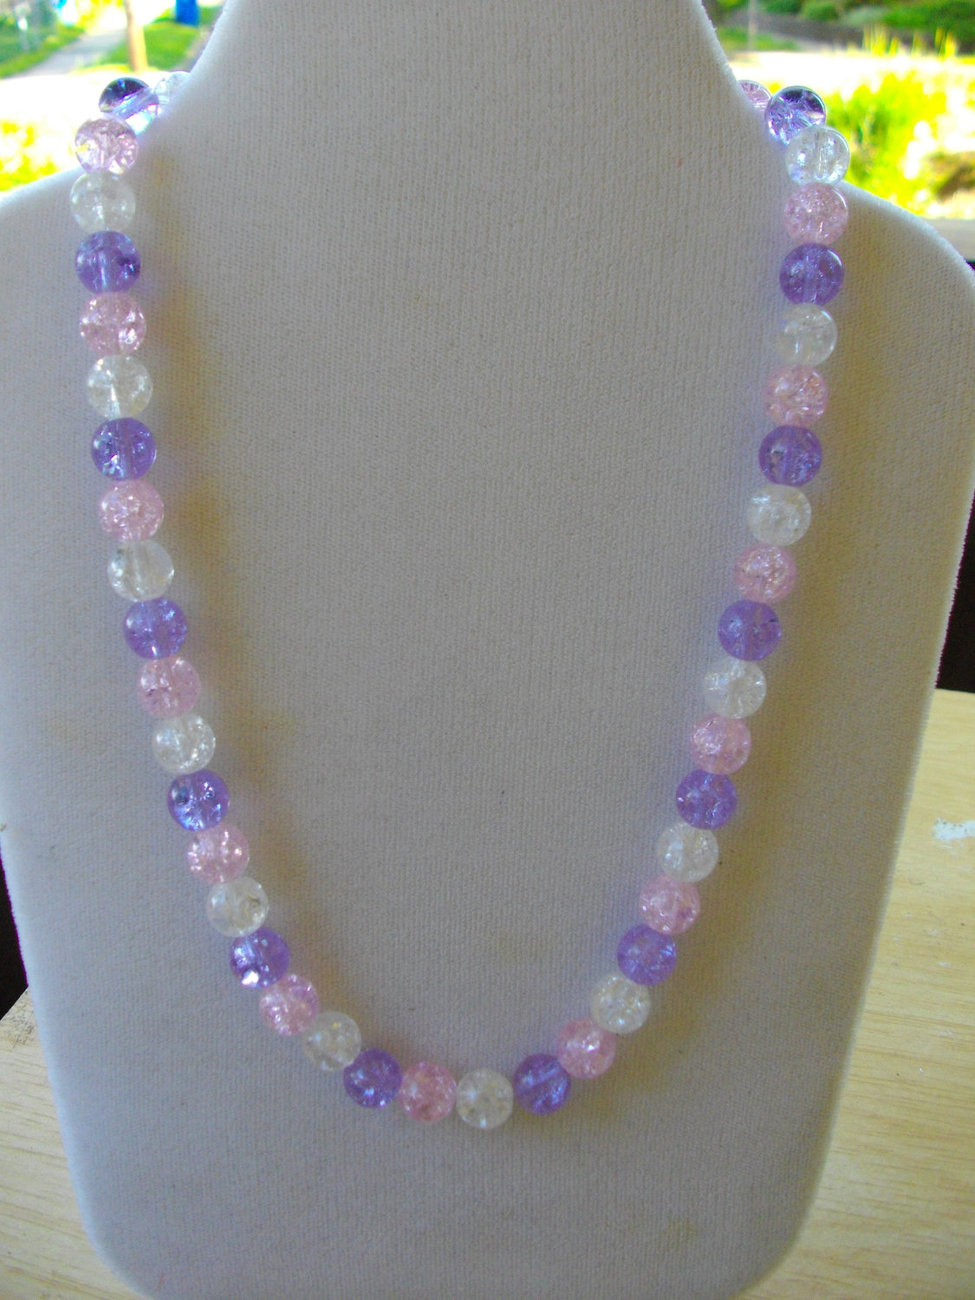 B-61  Pink, Clear and Lavender Crackle Glass Bead Necklace